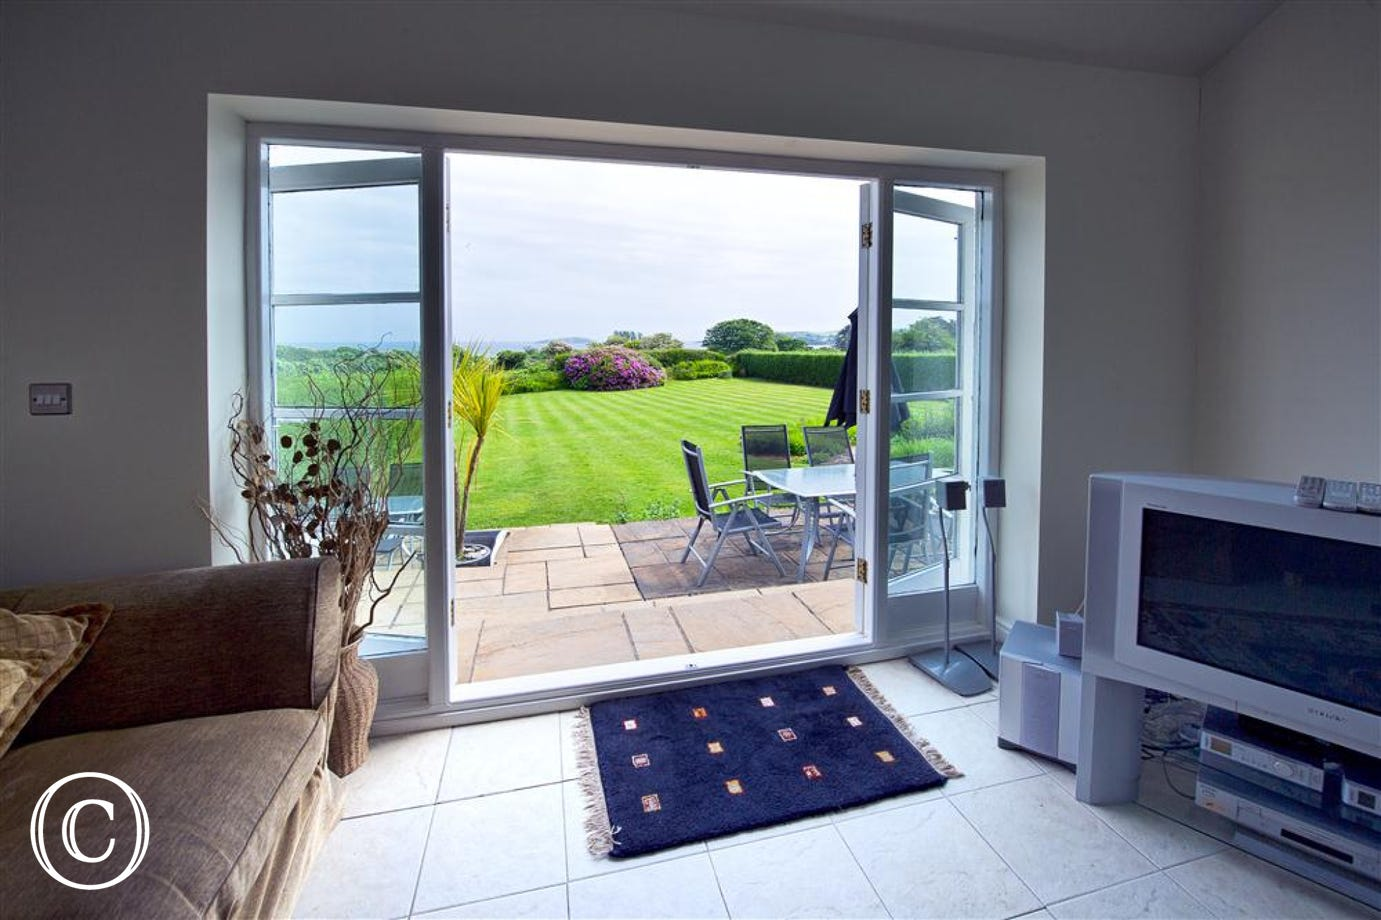 Garden can also be reached through the folding doors in the conservatory